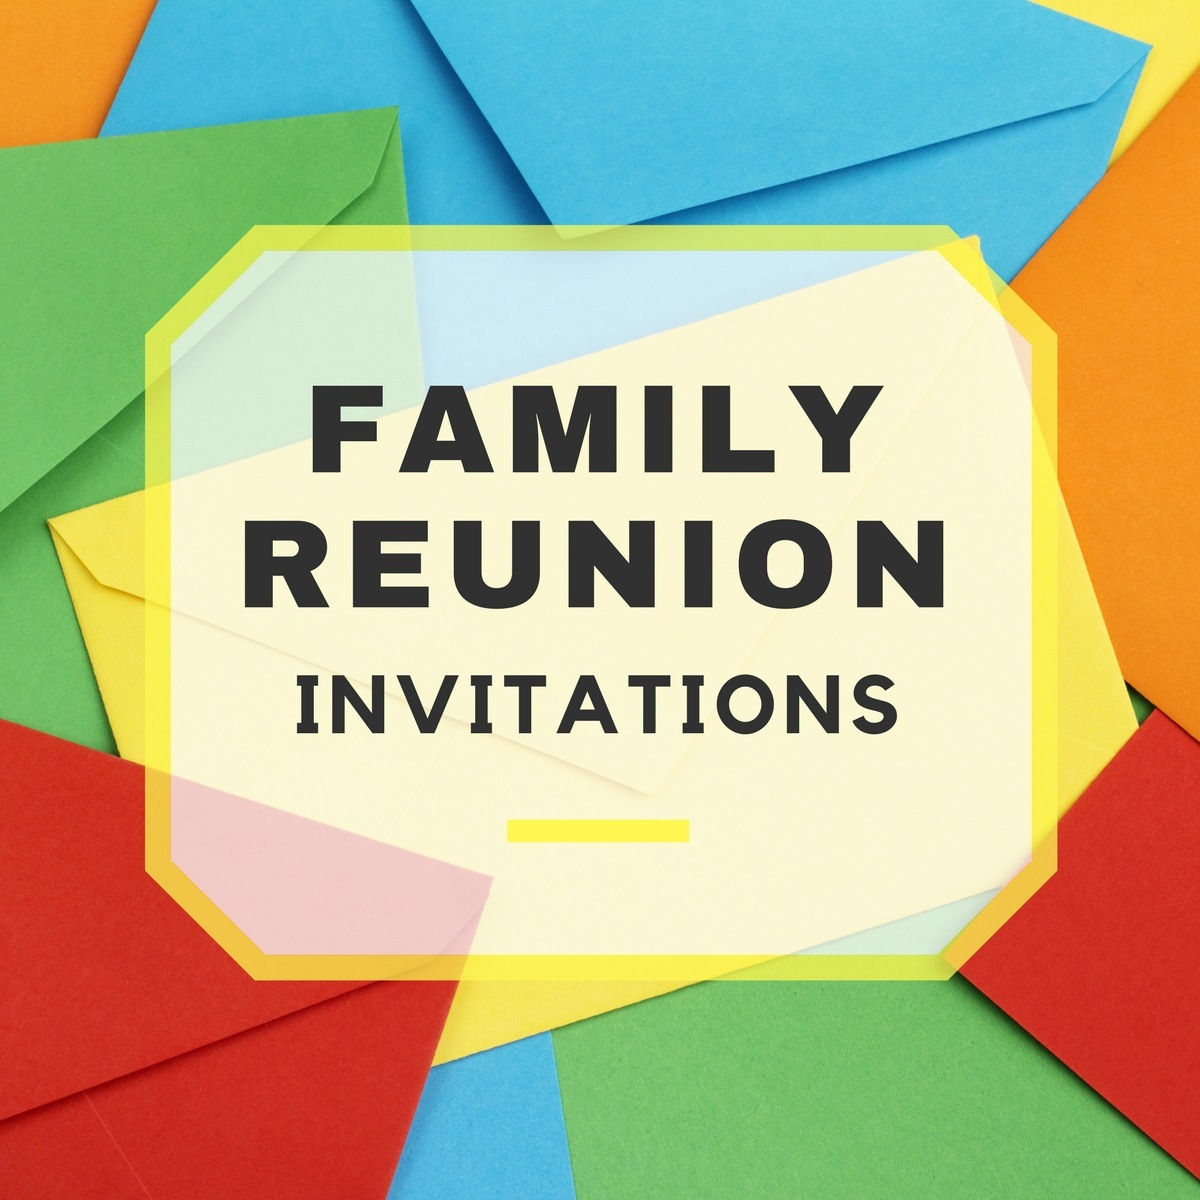 Family Reunion Invitations – Free Printable Family Reunion Invitations